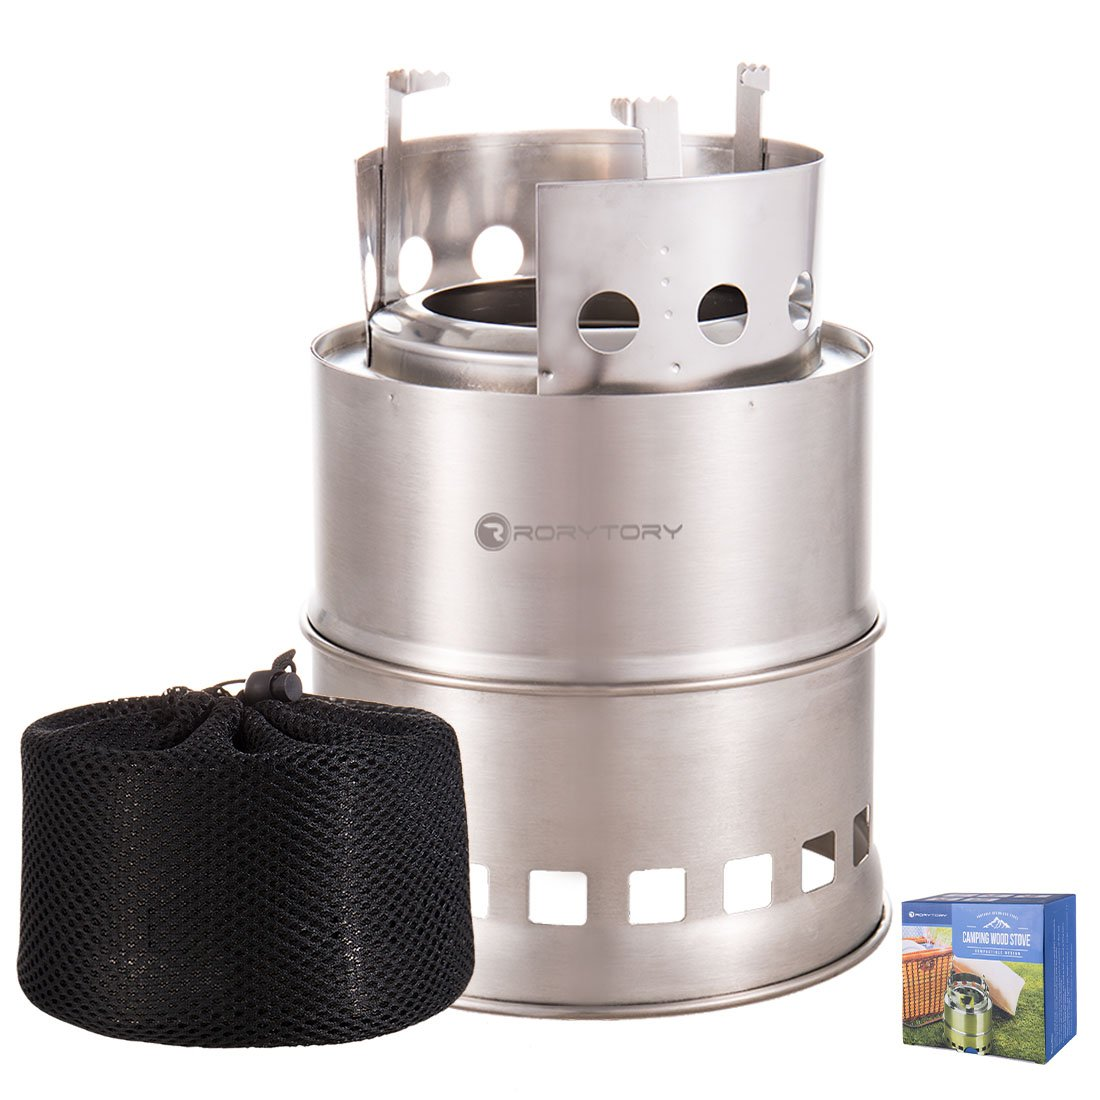 RoryTory Portable Stainless Steel Camping Gasifier Twig Stove - Compactible Design - Wood Backpacking Stove Camp Mini Portable Woodburning Fire Lightweight Stove Set - Compact for Survival Kit